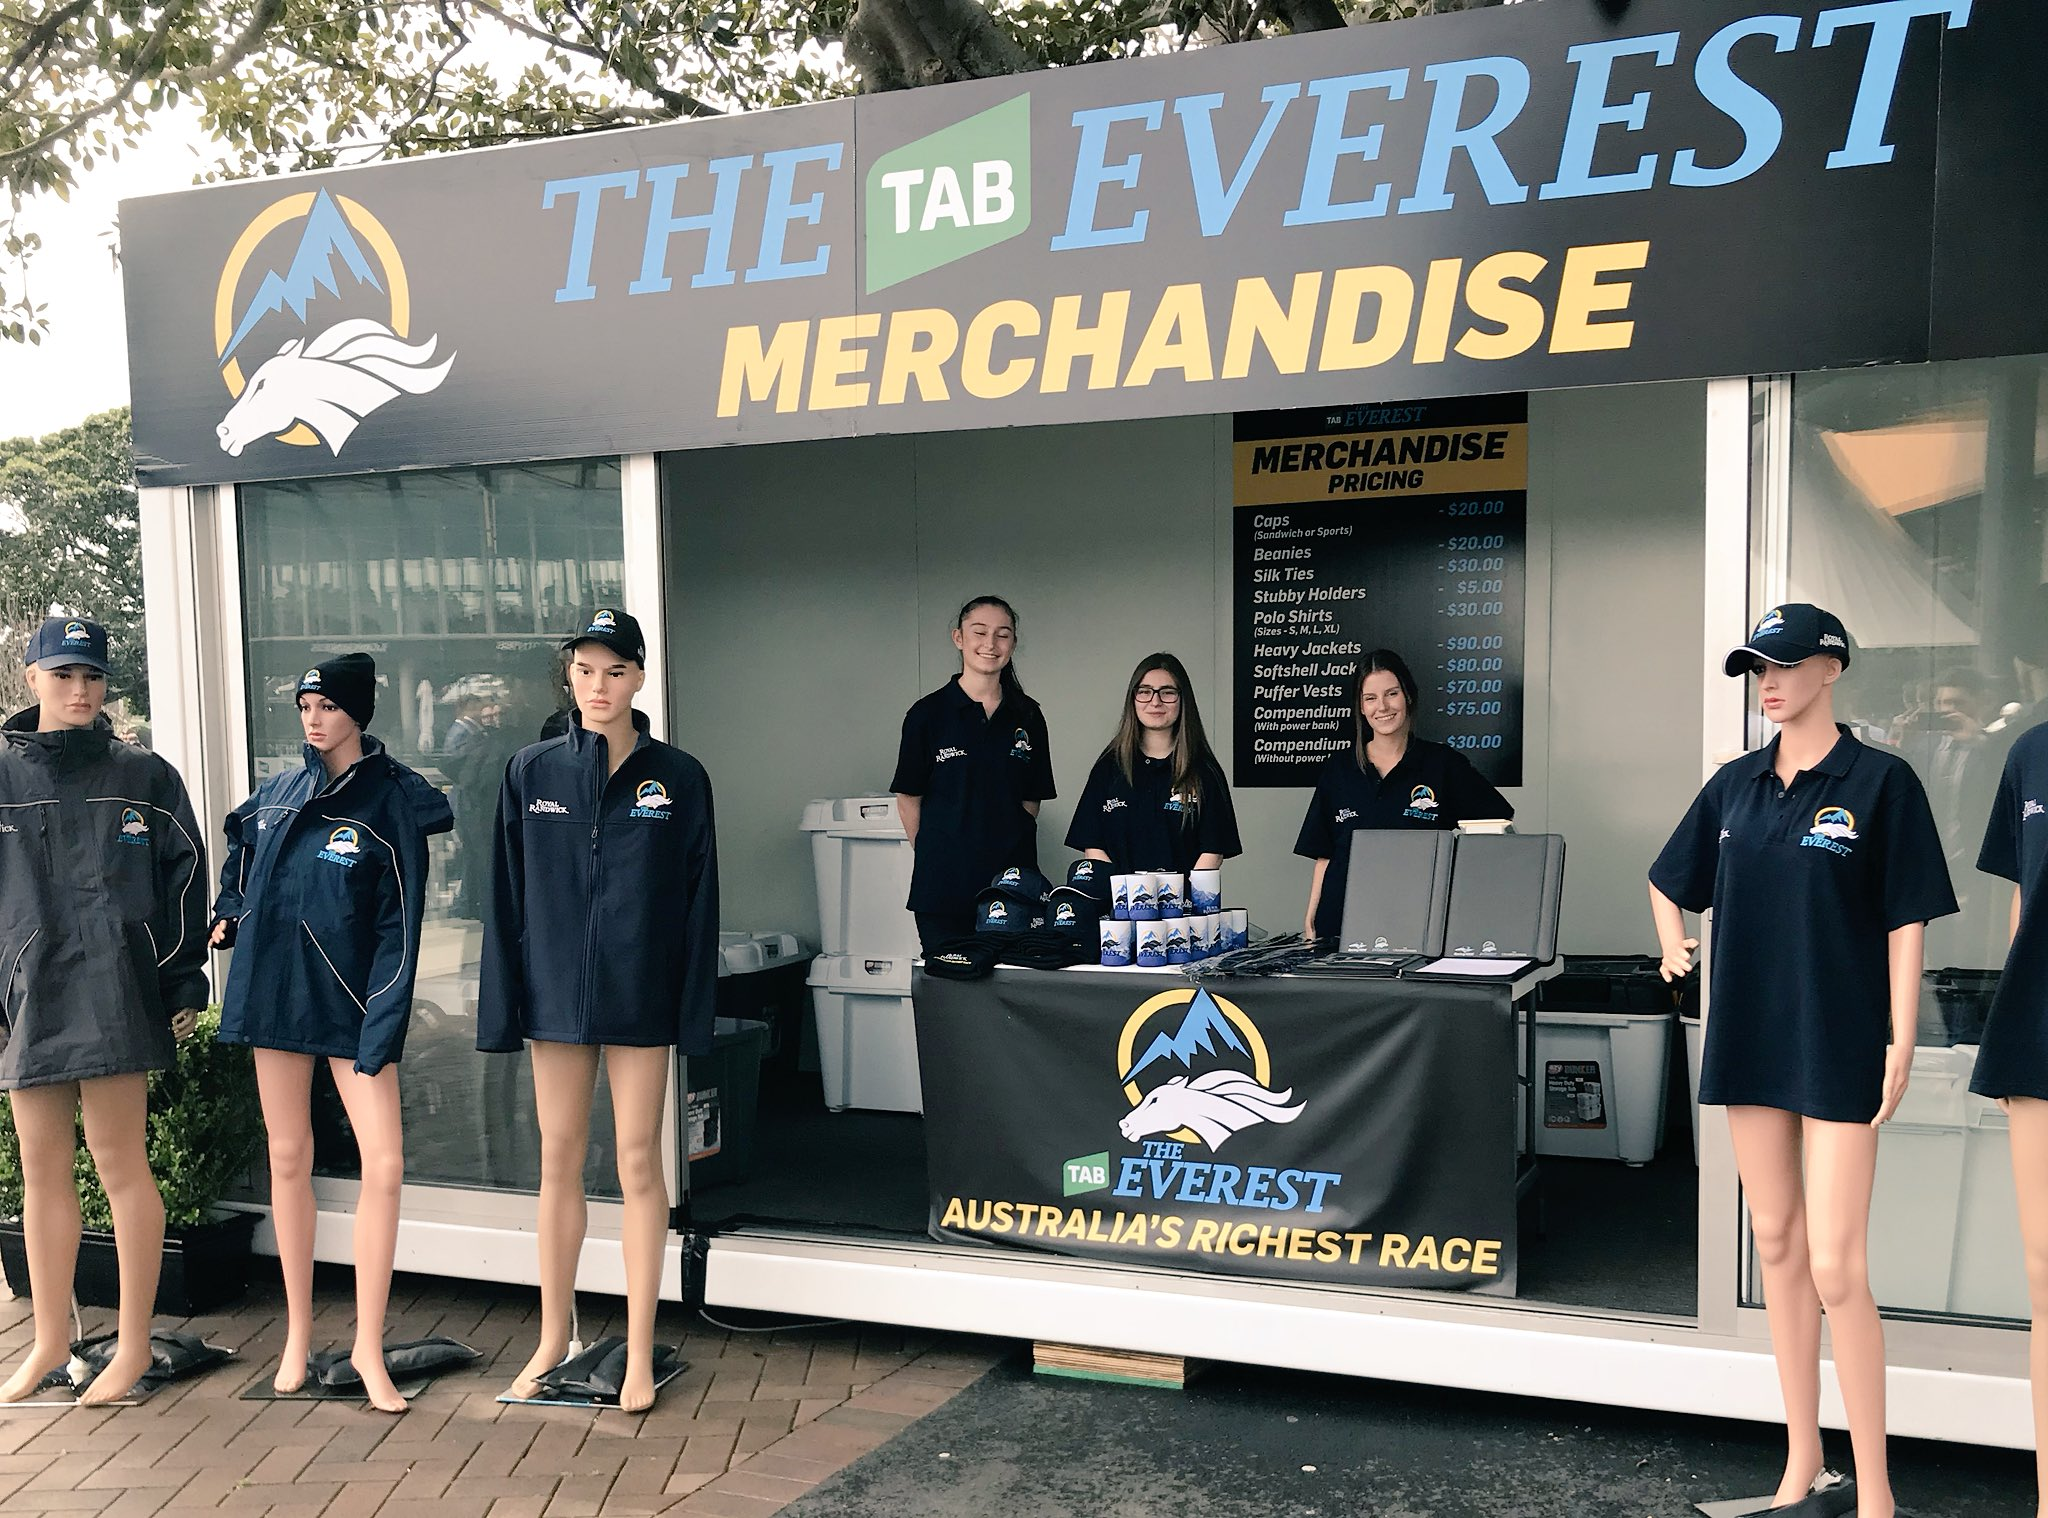 Racing Nsw On Twitter Be Sure To Check Out Theeverest Merchandise Tas Polo Design Store At Royalrandwick Today